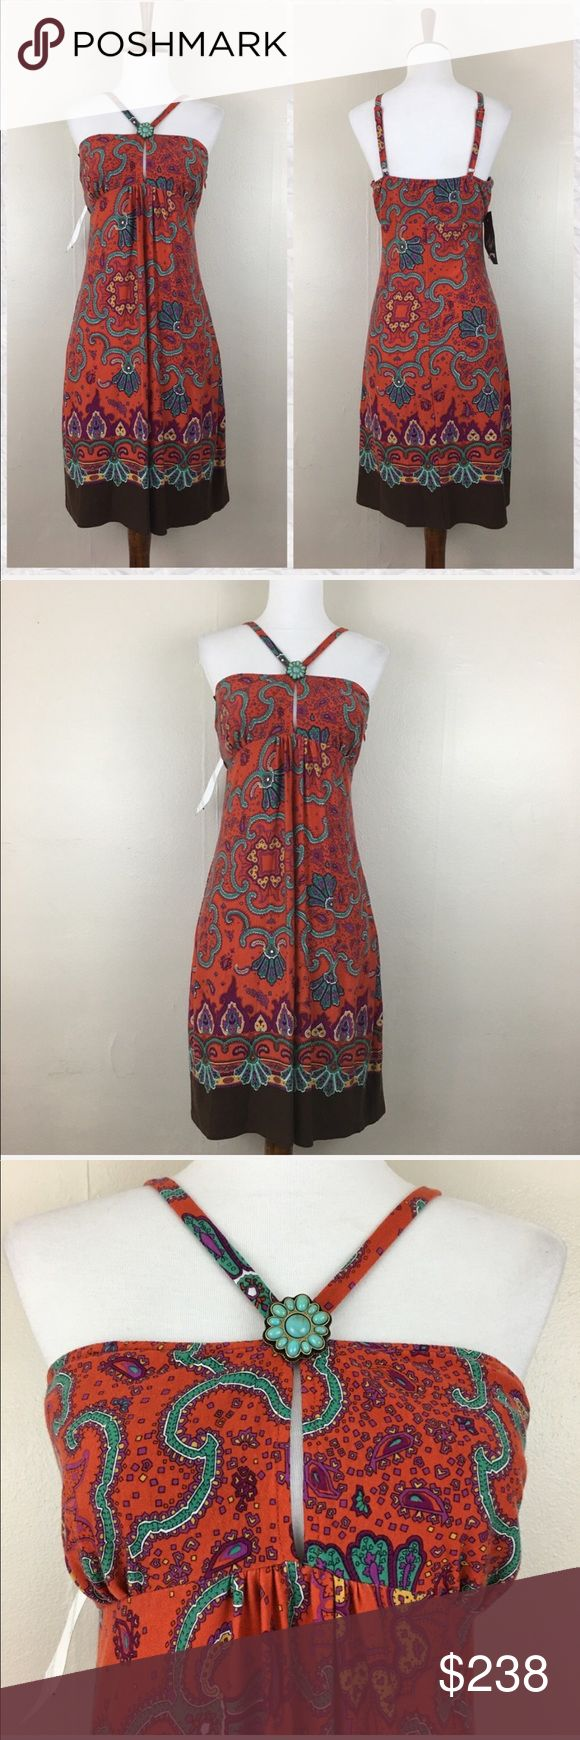 """Laundry Shelli Segal Paisley Halter Dress *NWT *PLEASE NOTE** tags are those shown in photo from Lord & Taylor *Tag reads 6 but may run a bit small in my opinion. *Adjustable straps *Bust is lined. Skirt is unlined. *Empire waist *Keyhole in bodice *Side zip *Shell: 97% Tencel Lyocell 3% Spandex *Lining: 97% Tencel Lyocell 3% Spandex *Dry clean *Measurements are approx & taken lying flat *Bust: 31"""" *Empire Waist: 30"""" *Hip: 42"""" *Shoulder to Hem: 35.5"""" but can vary slightly due to adjustable…"""